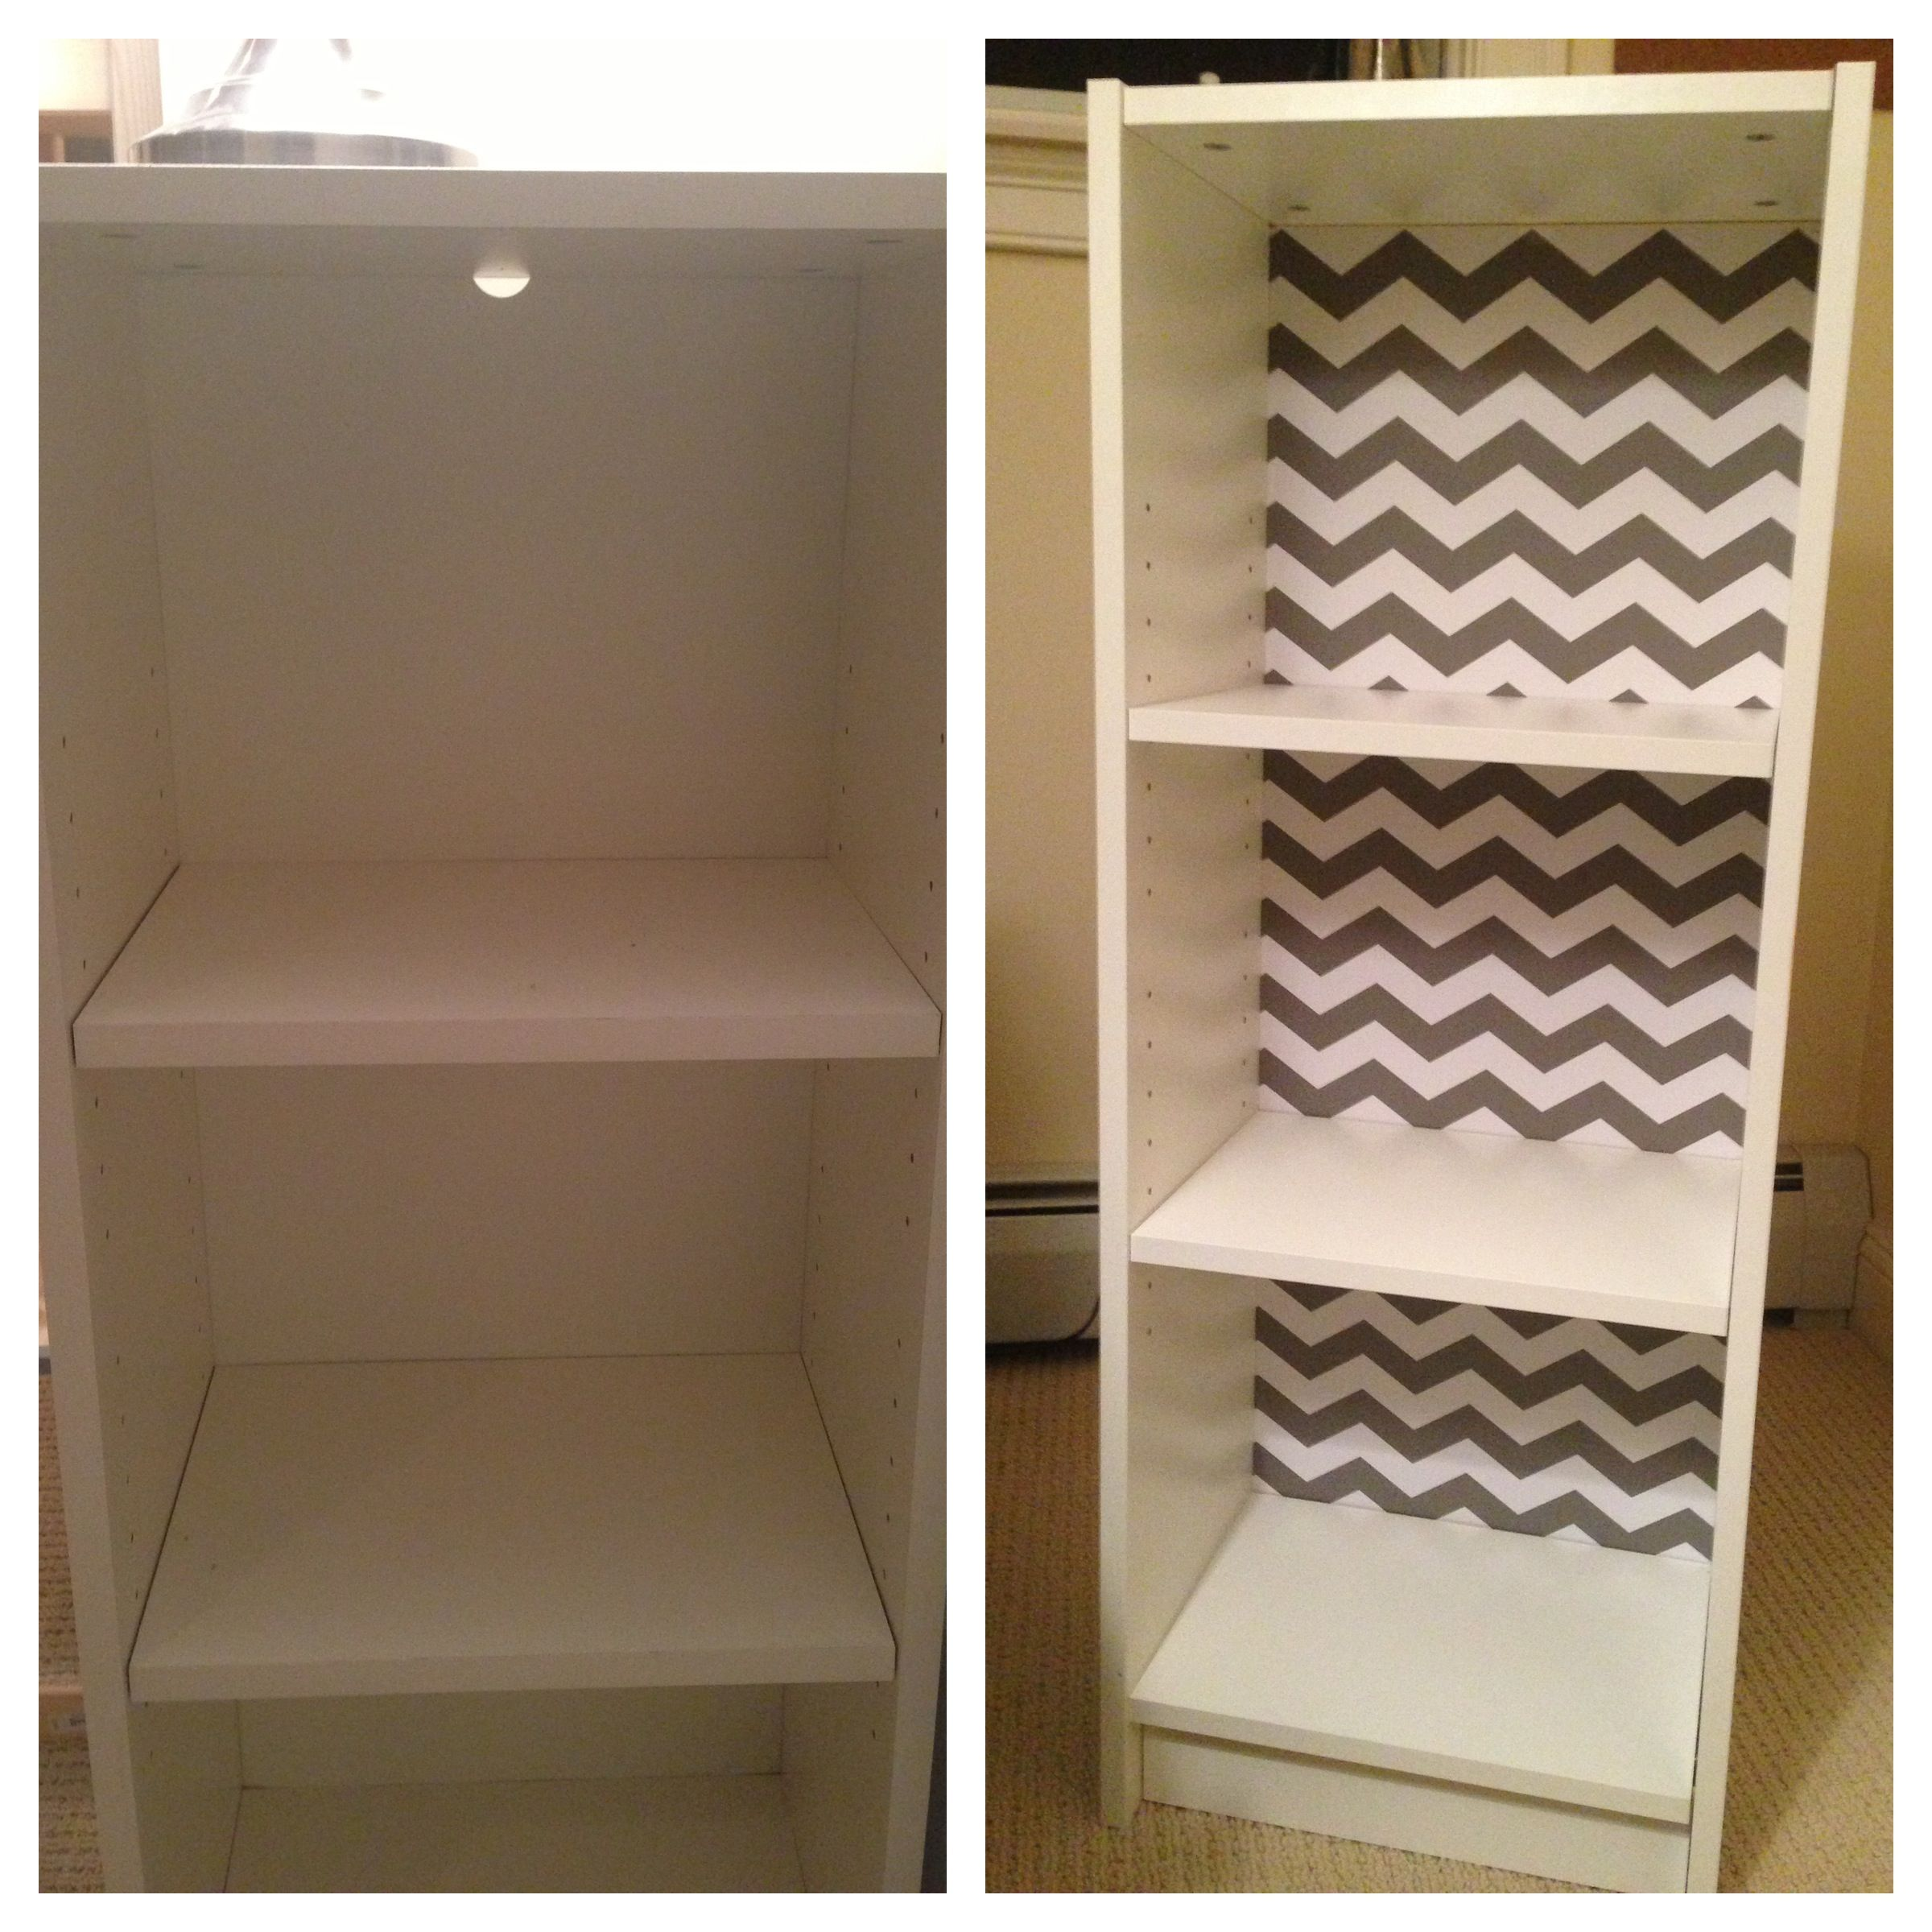 Contact Paper For Furniture Upcycled Ikea Billy Bookshelf Macbeth Contact Paper For The